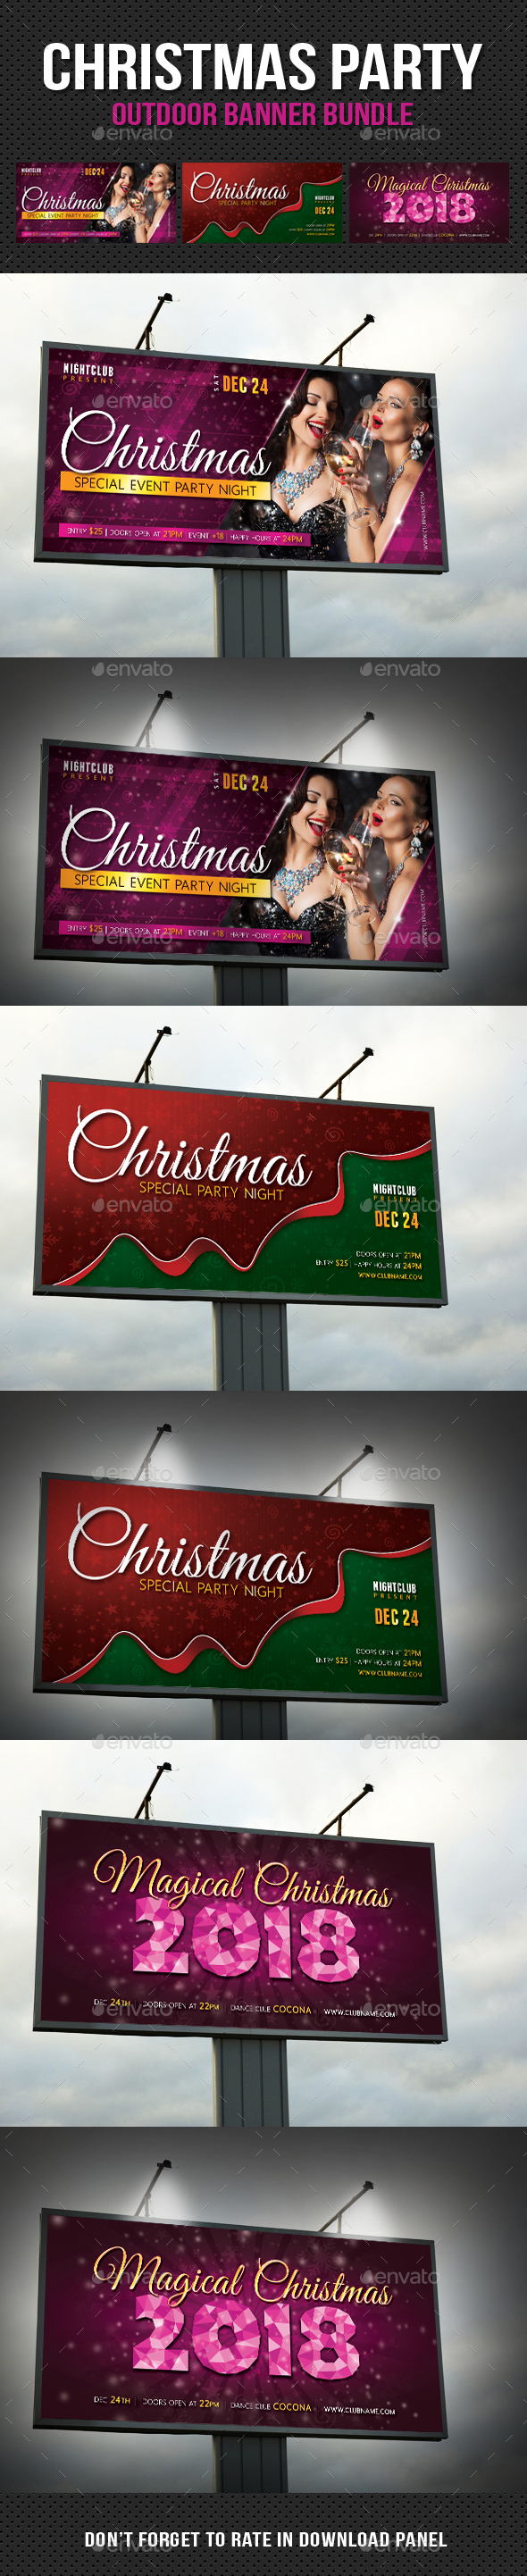 3 in 1 Christmas Party Outdoor Banner Bundle - Signage Print Templates